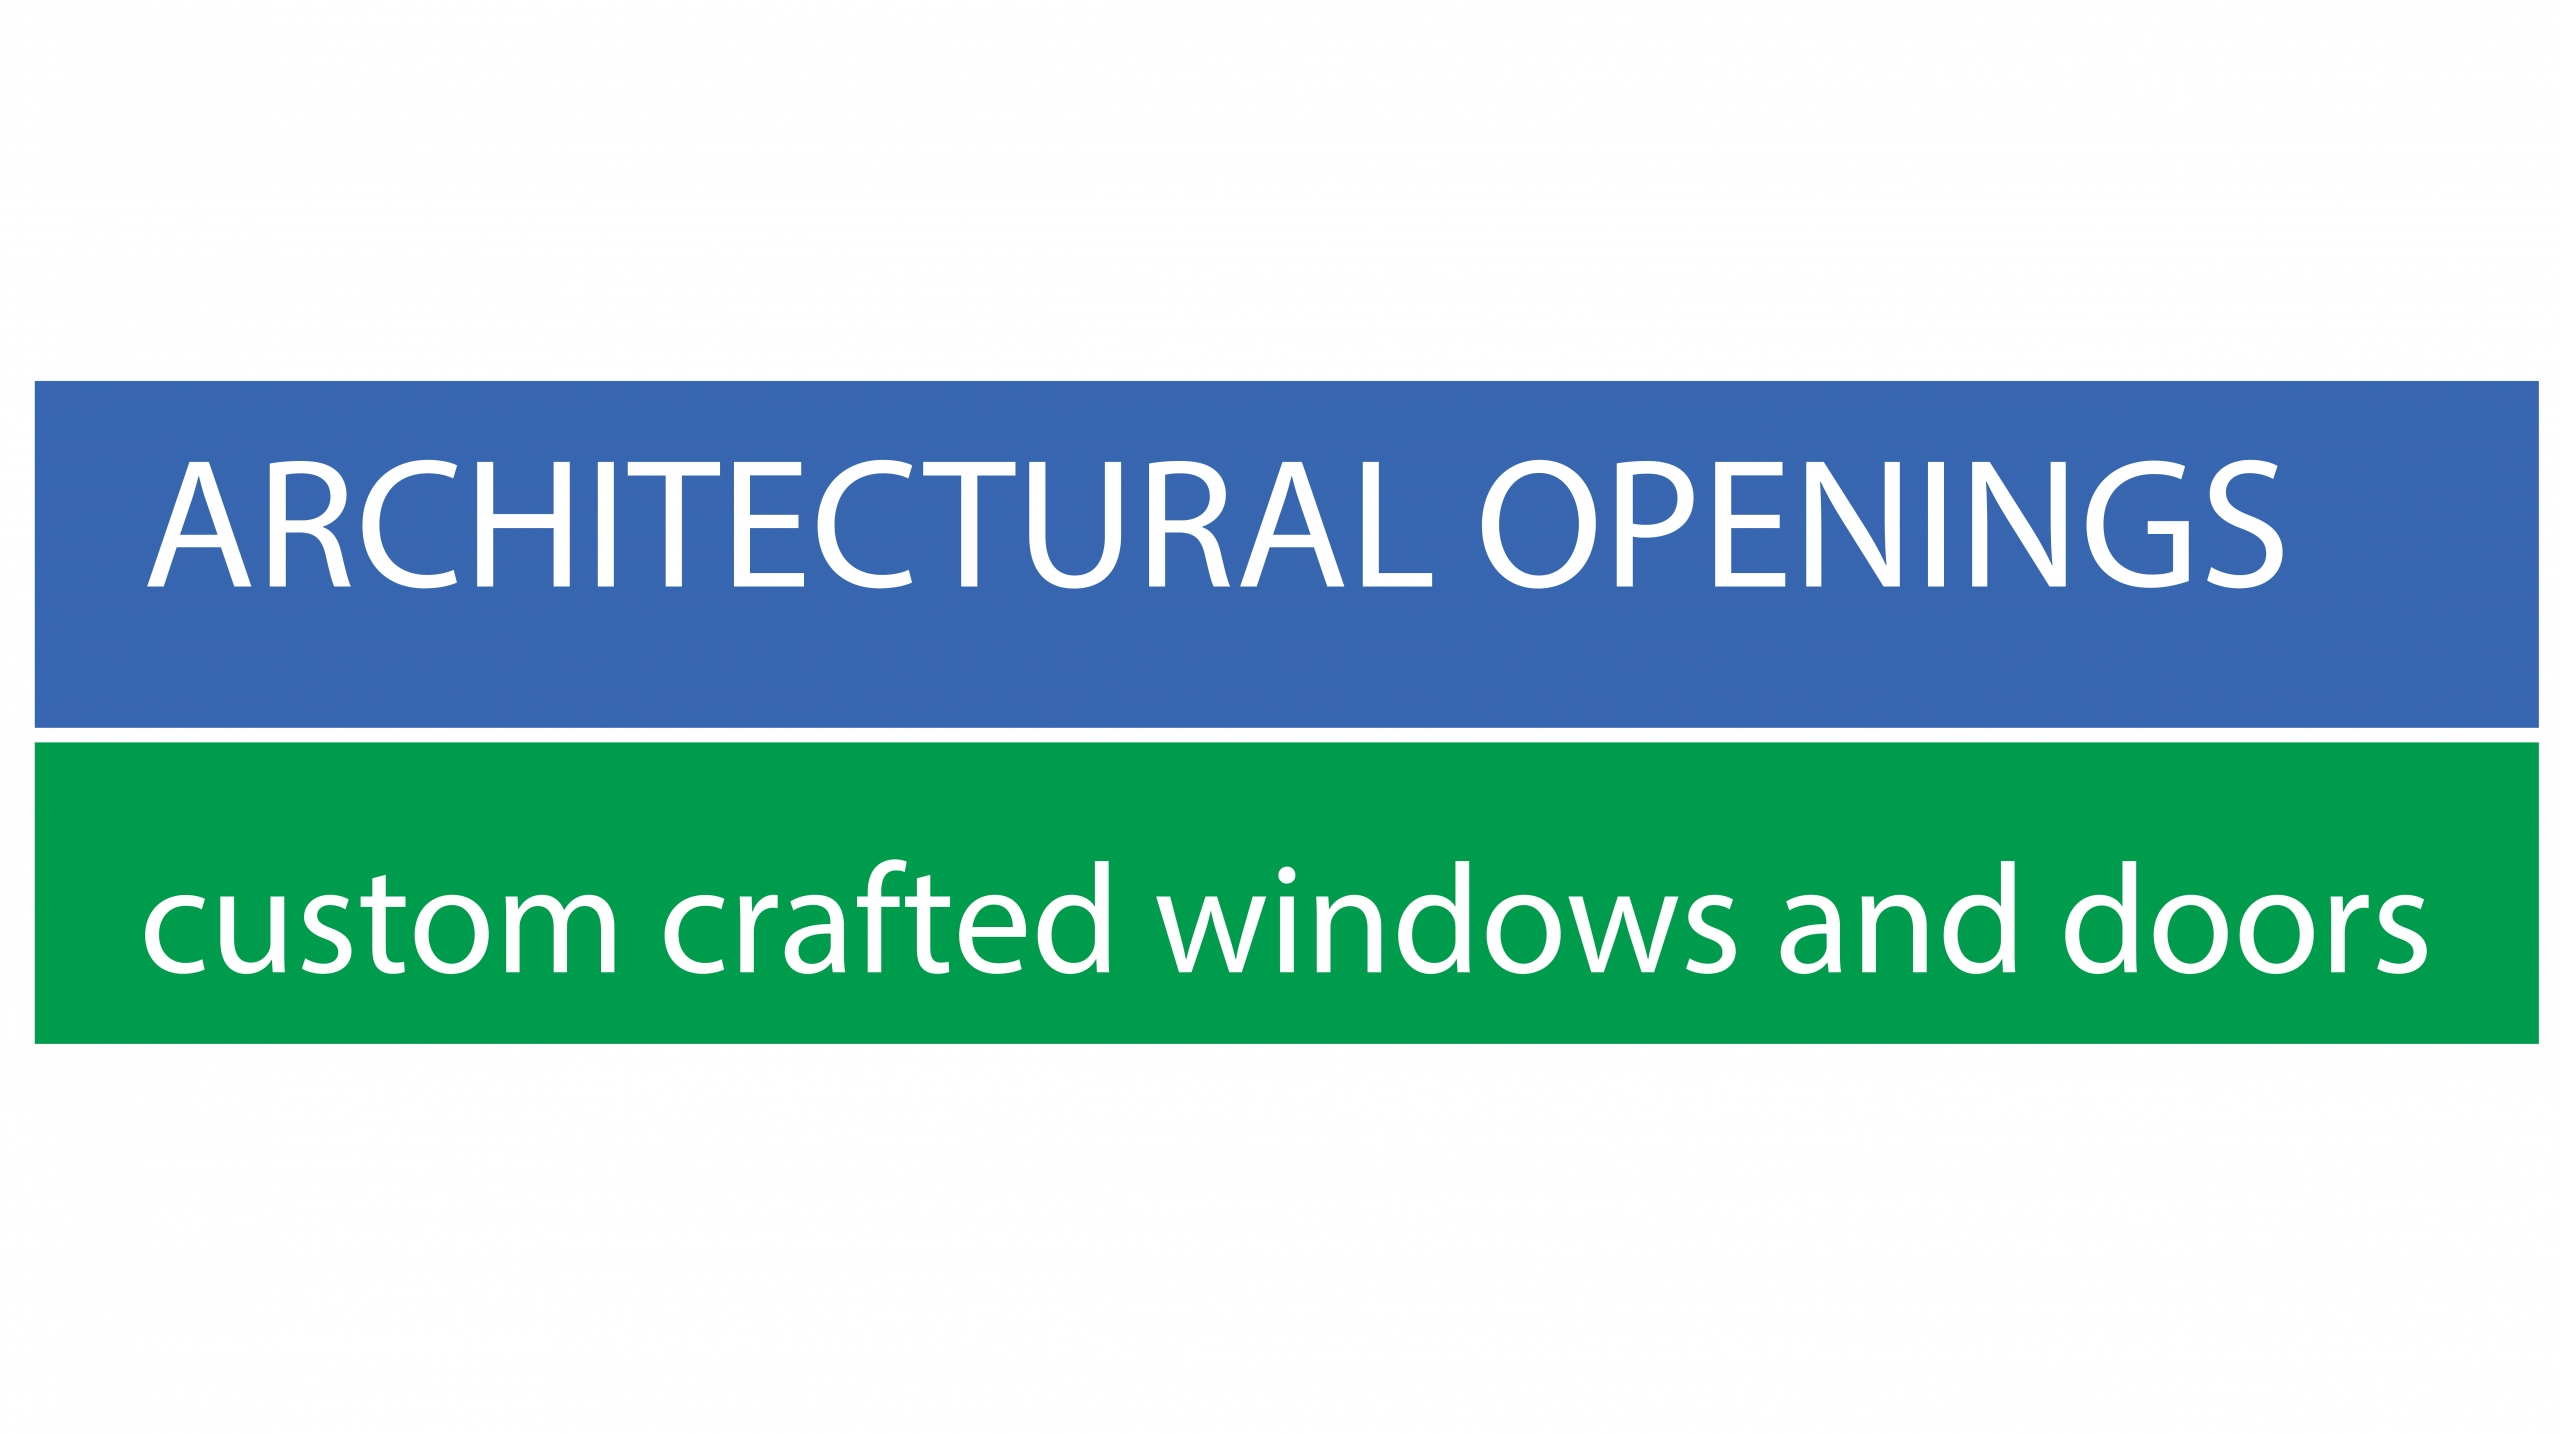 Architectural Openings logo